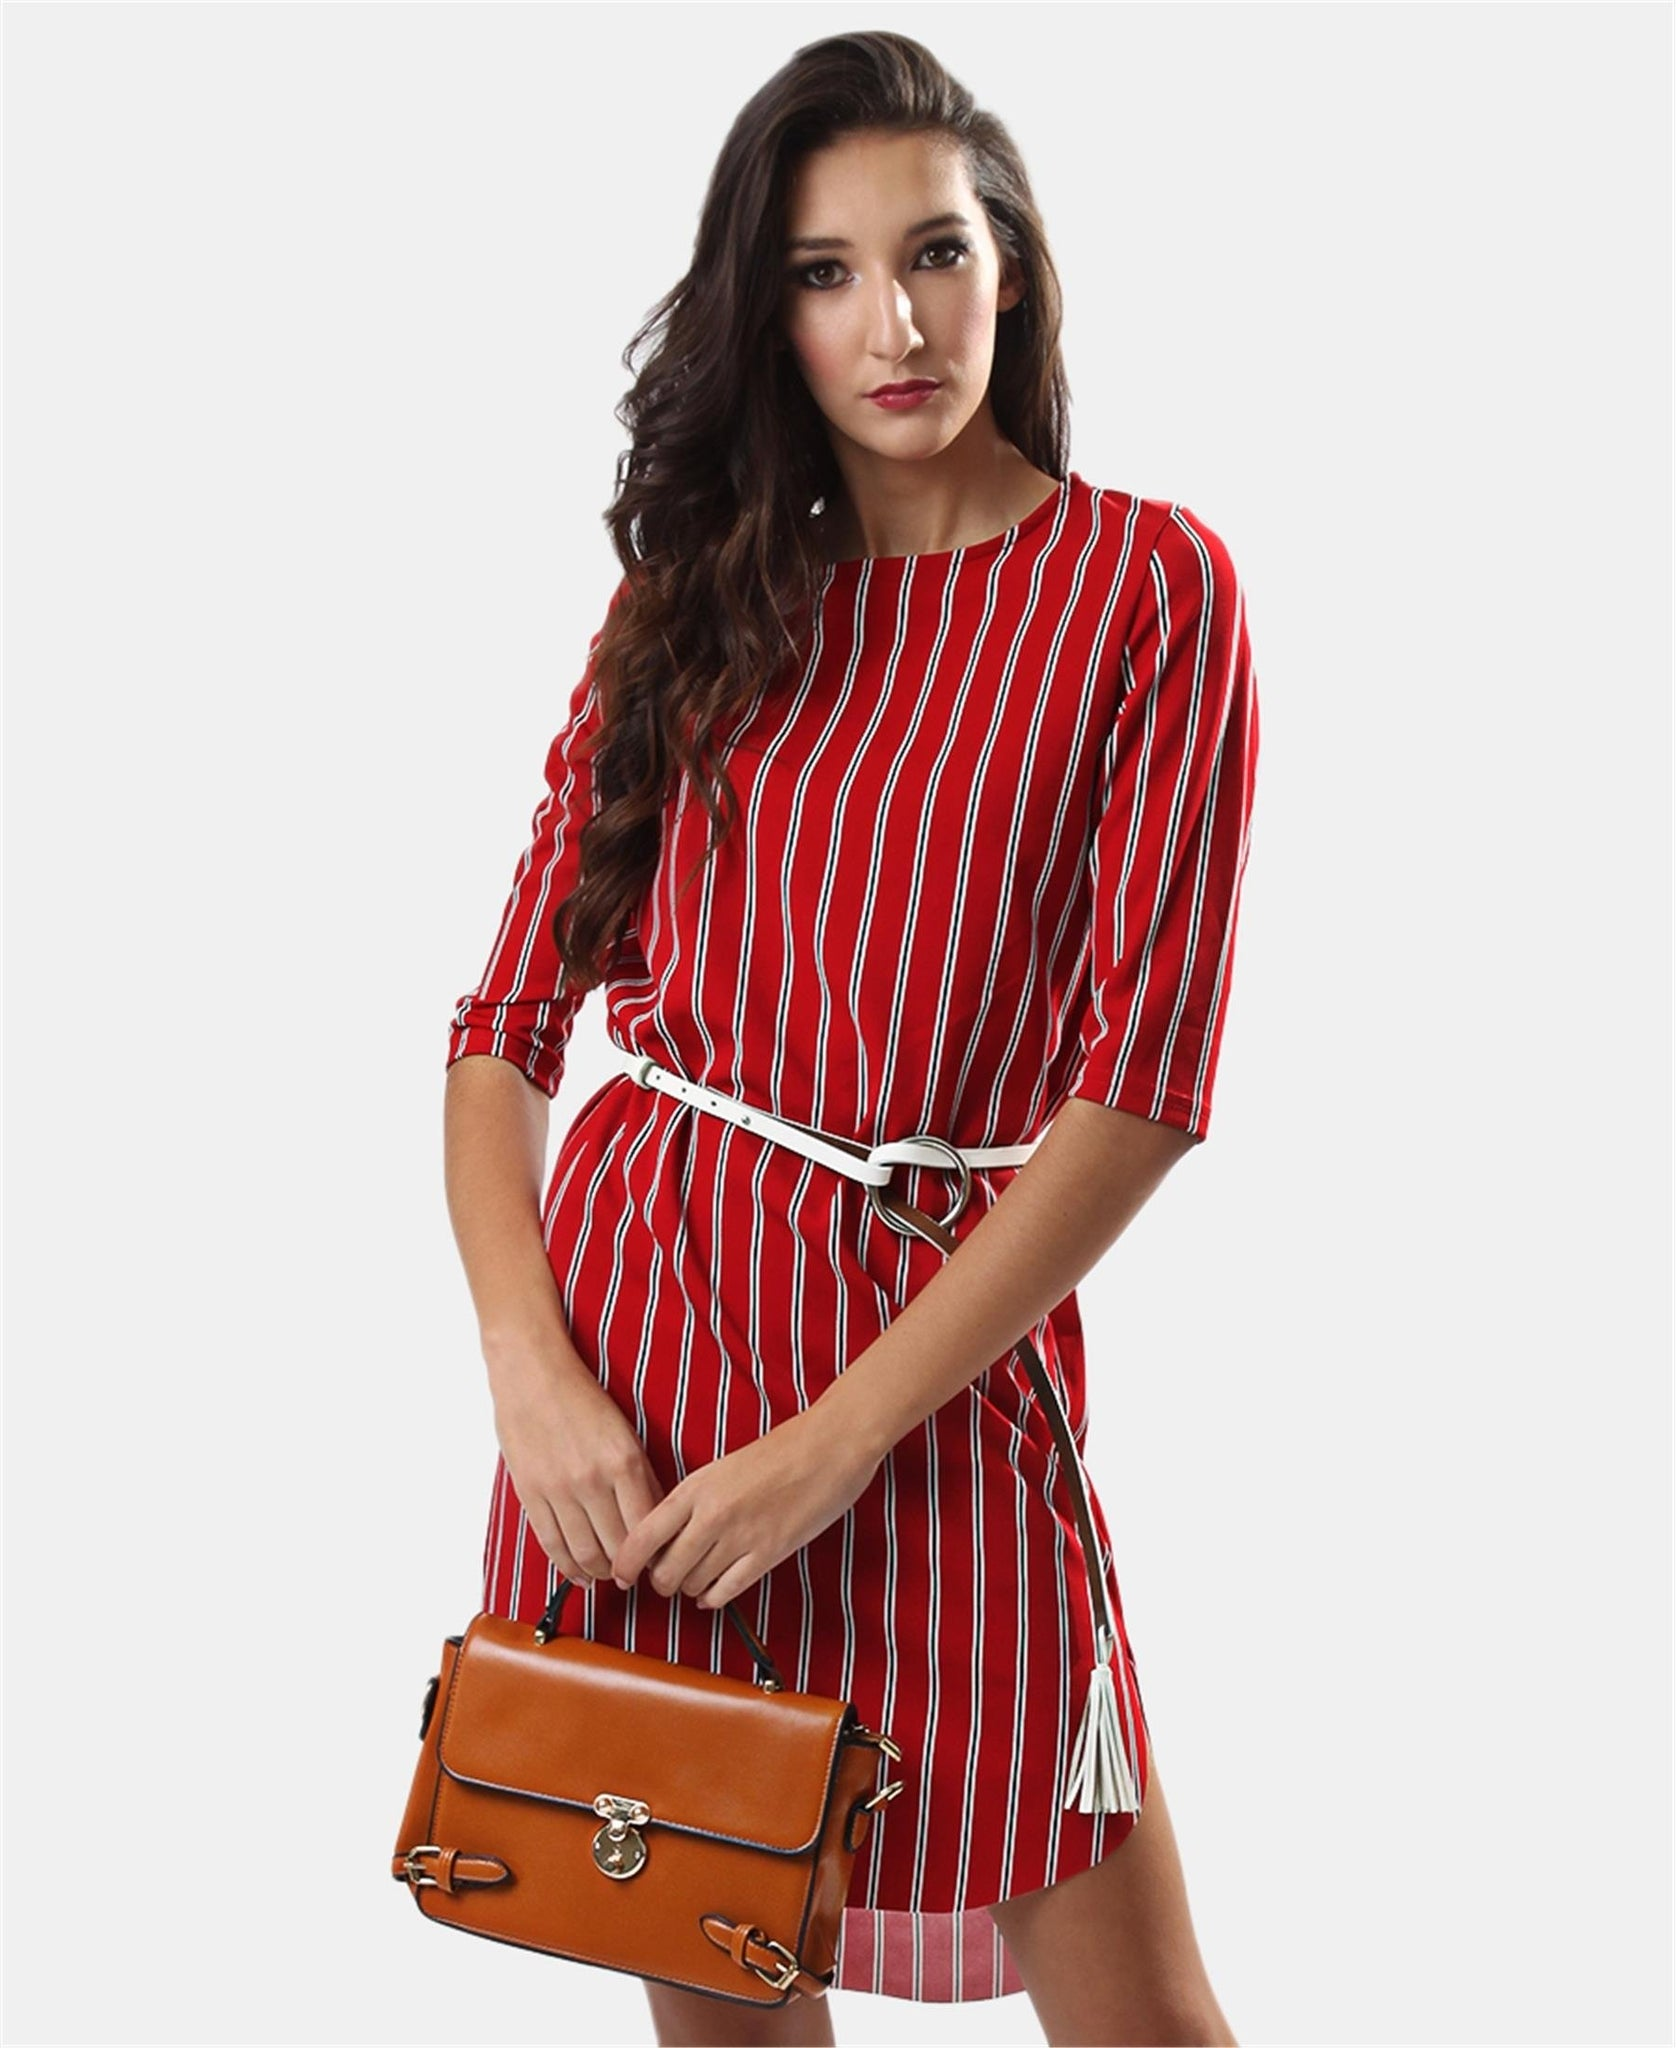 3/4 Sleeve Dress - Red